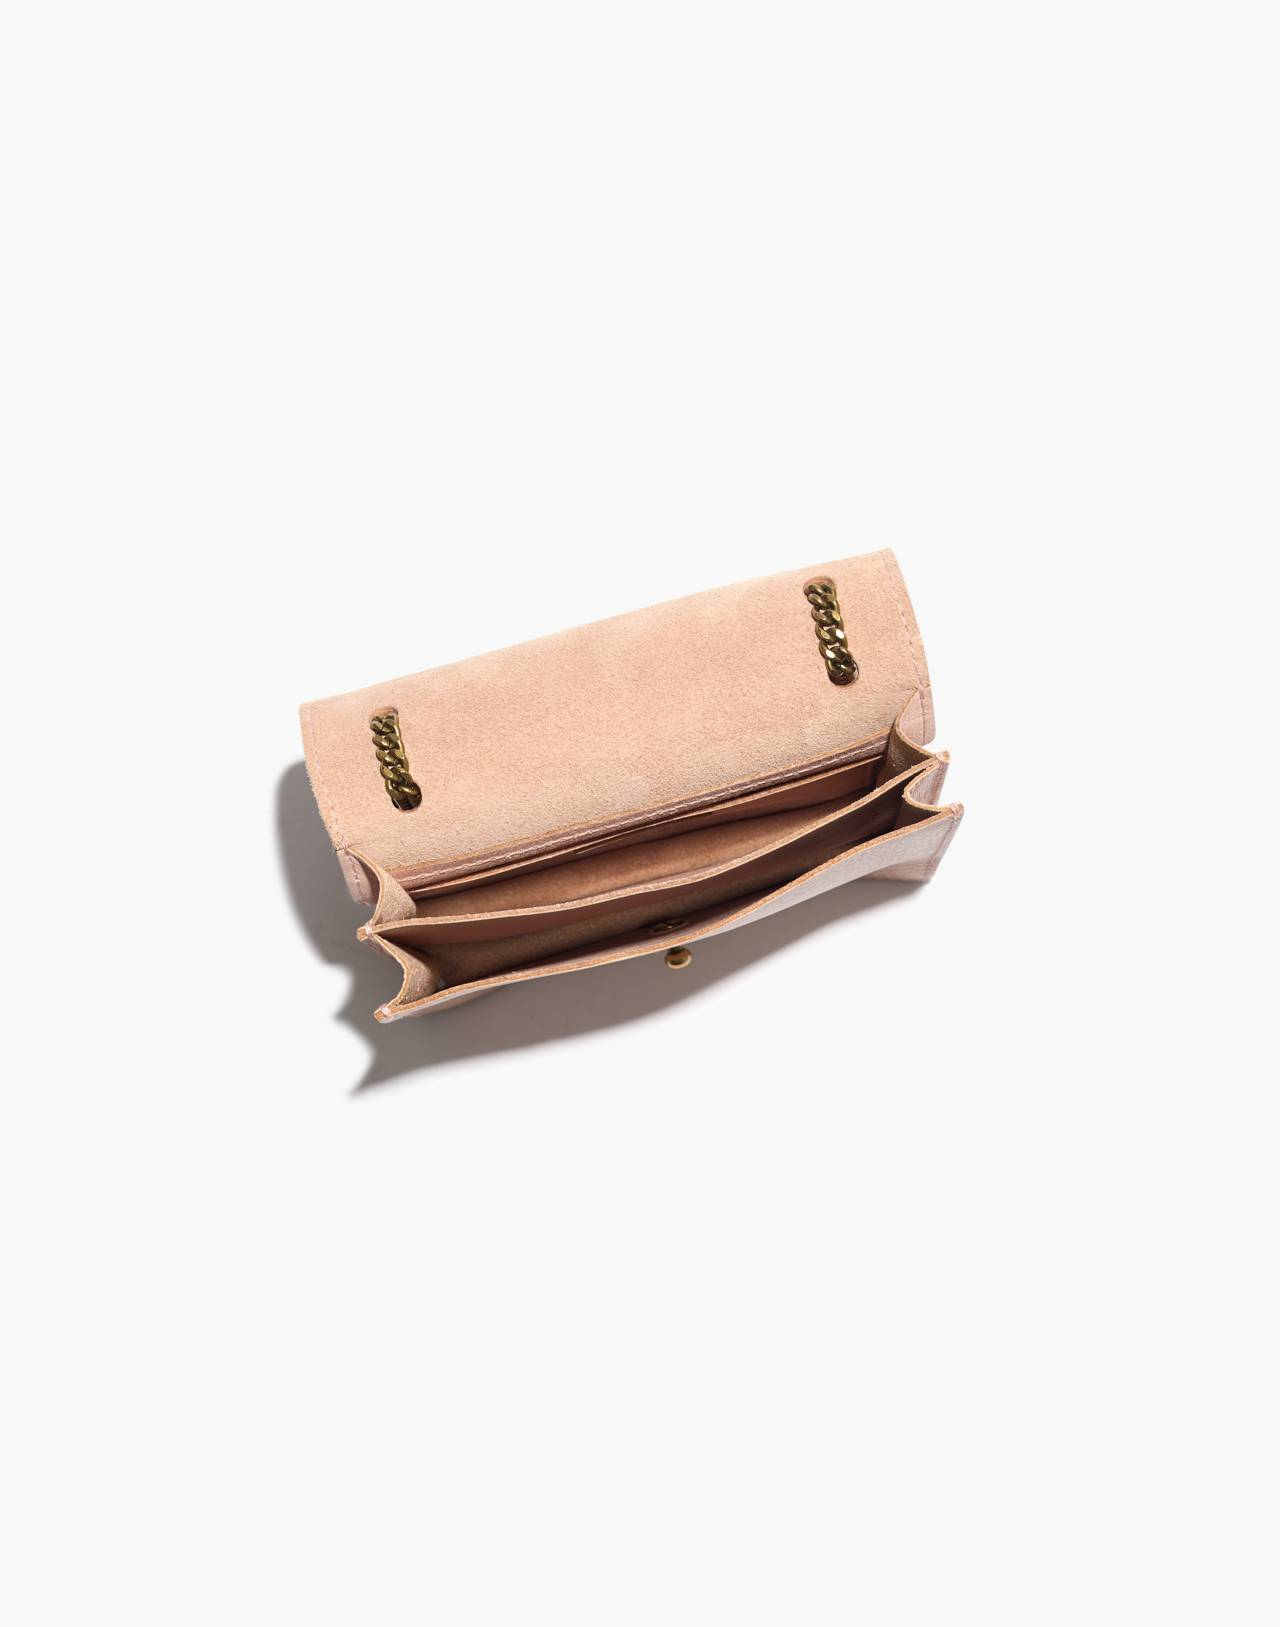 The Chain Crossbody Bag in sheer pink image 3